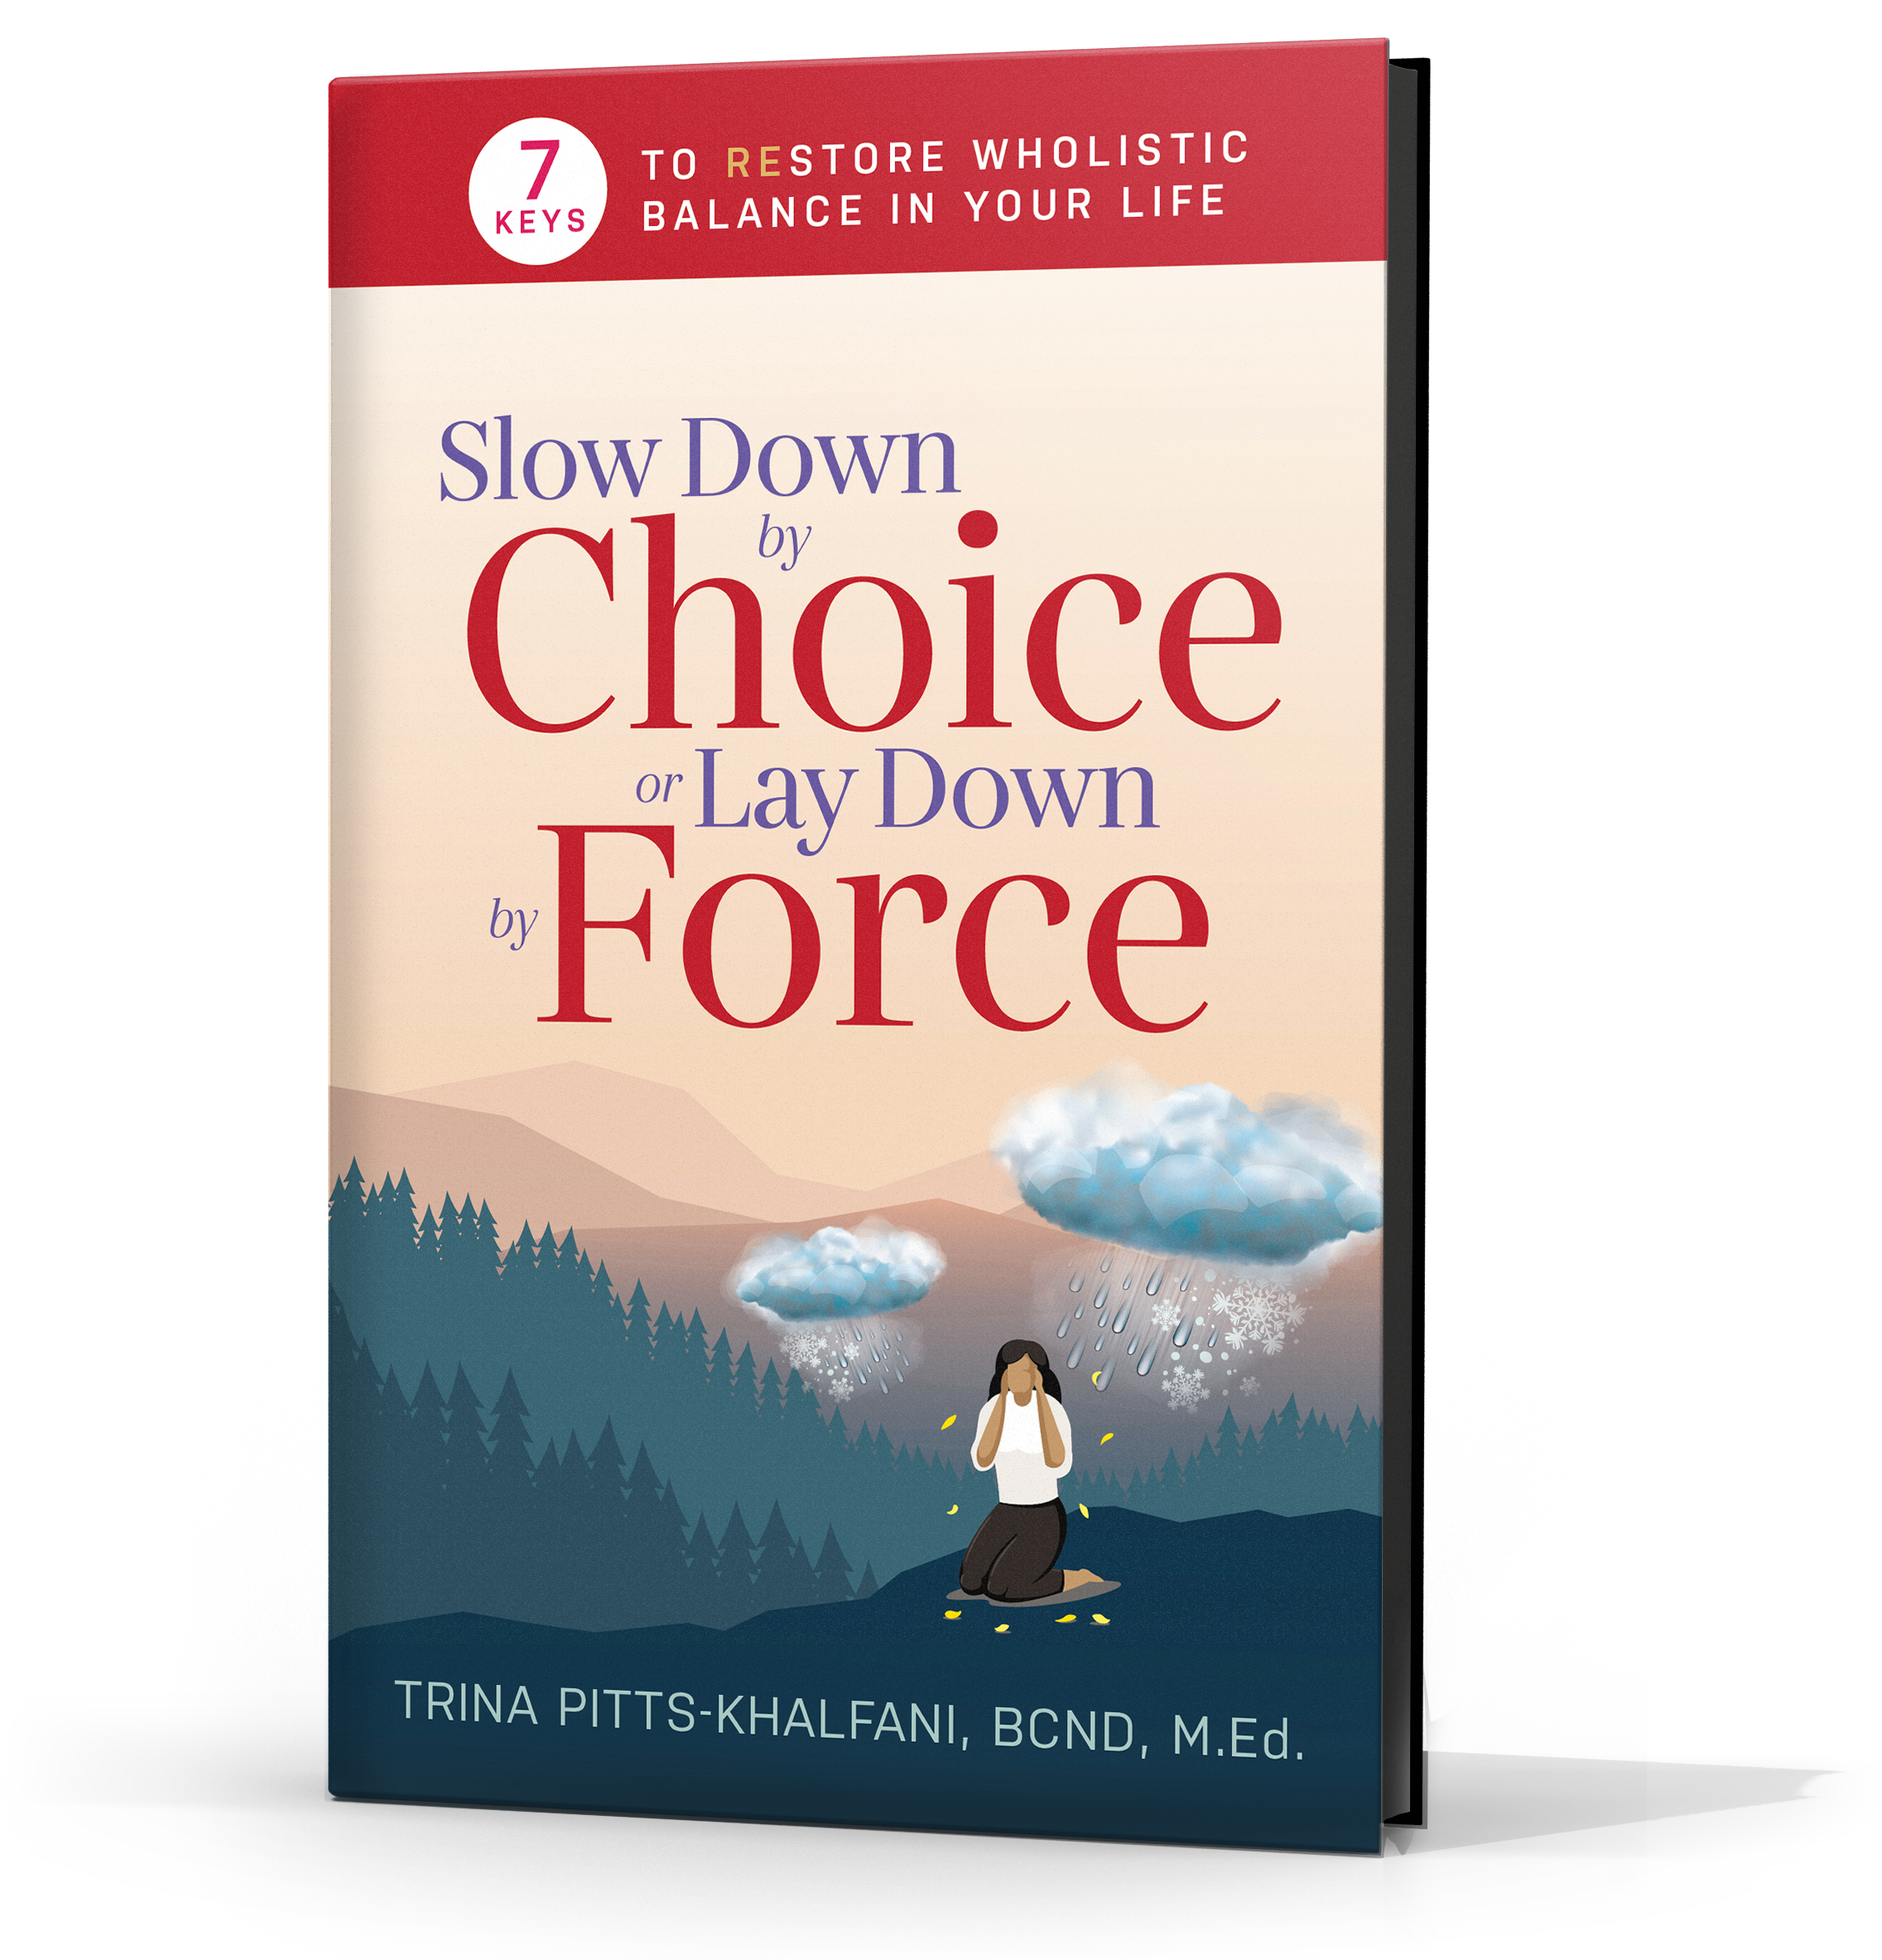 Holistic Practitioner and Bestselling Author Releases Book Promoting Wholeness and Balance